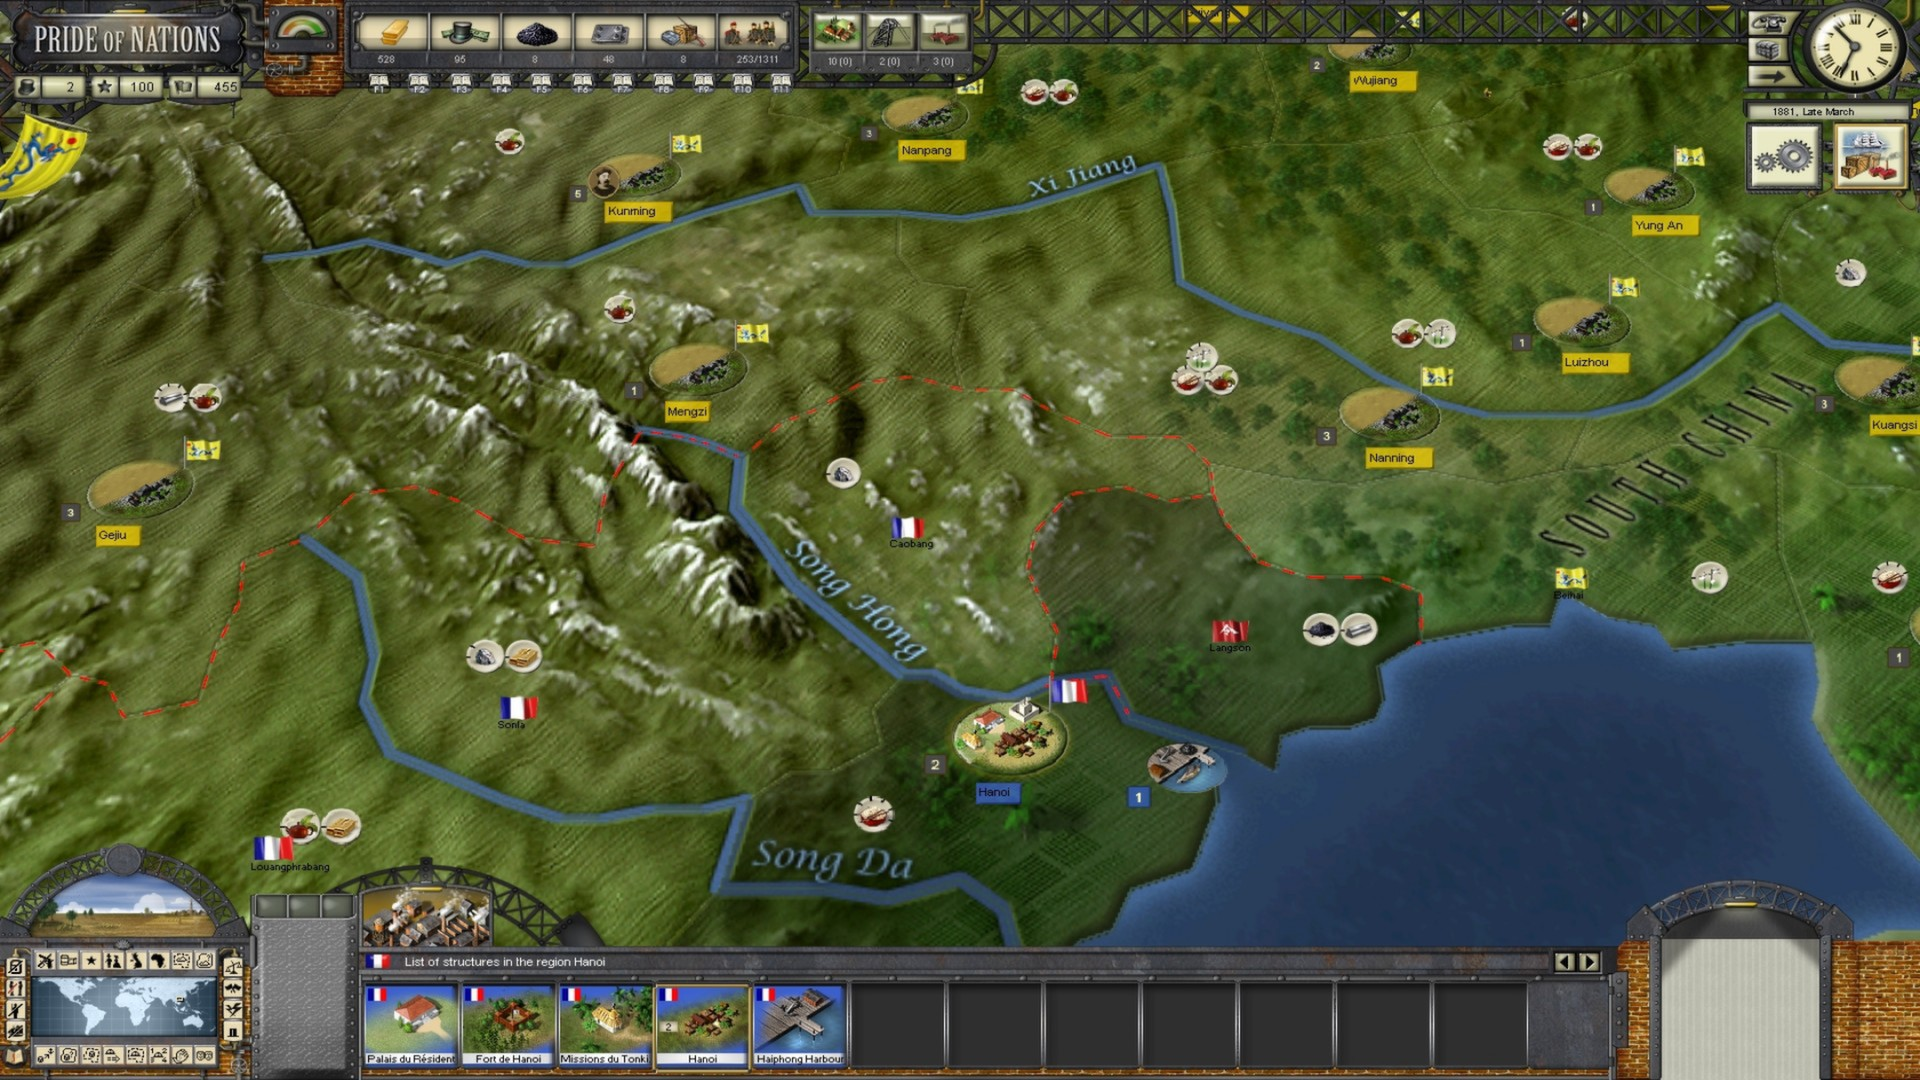 Pride of Nations: The Scramble for Africa 2012 pc game Img-4